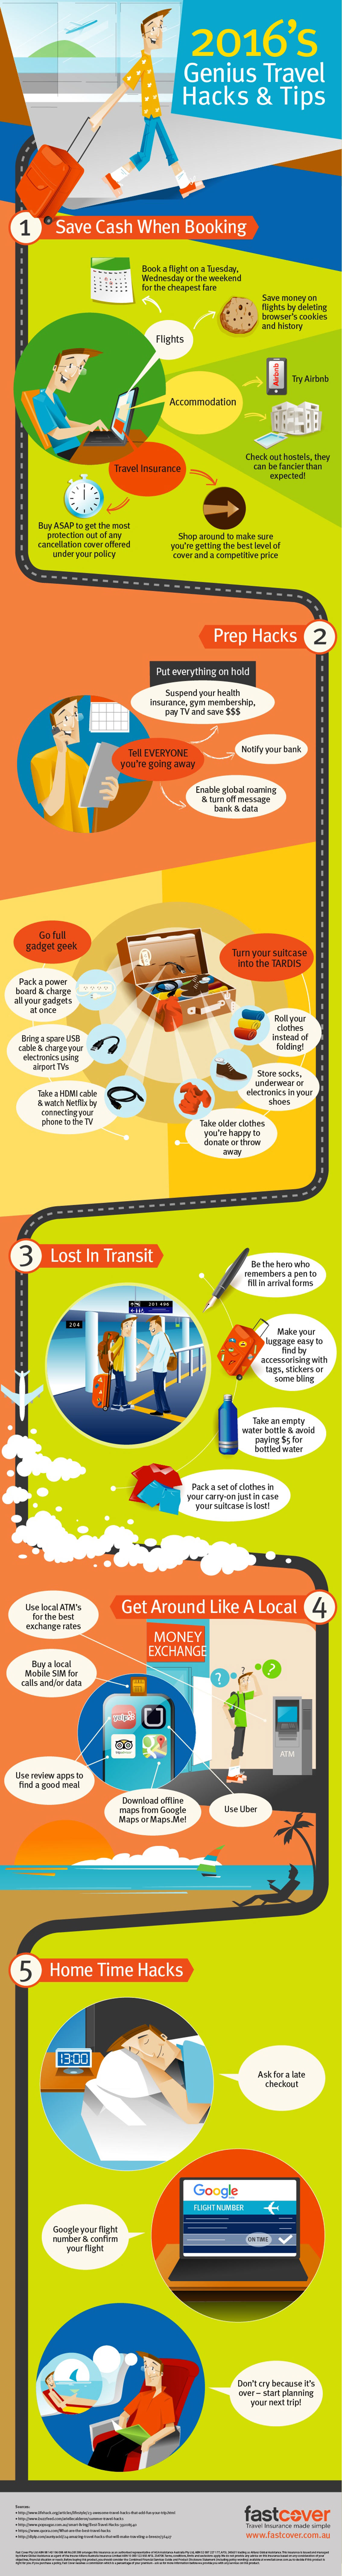 Genius Travel Hacks and Tips Infographic